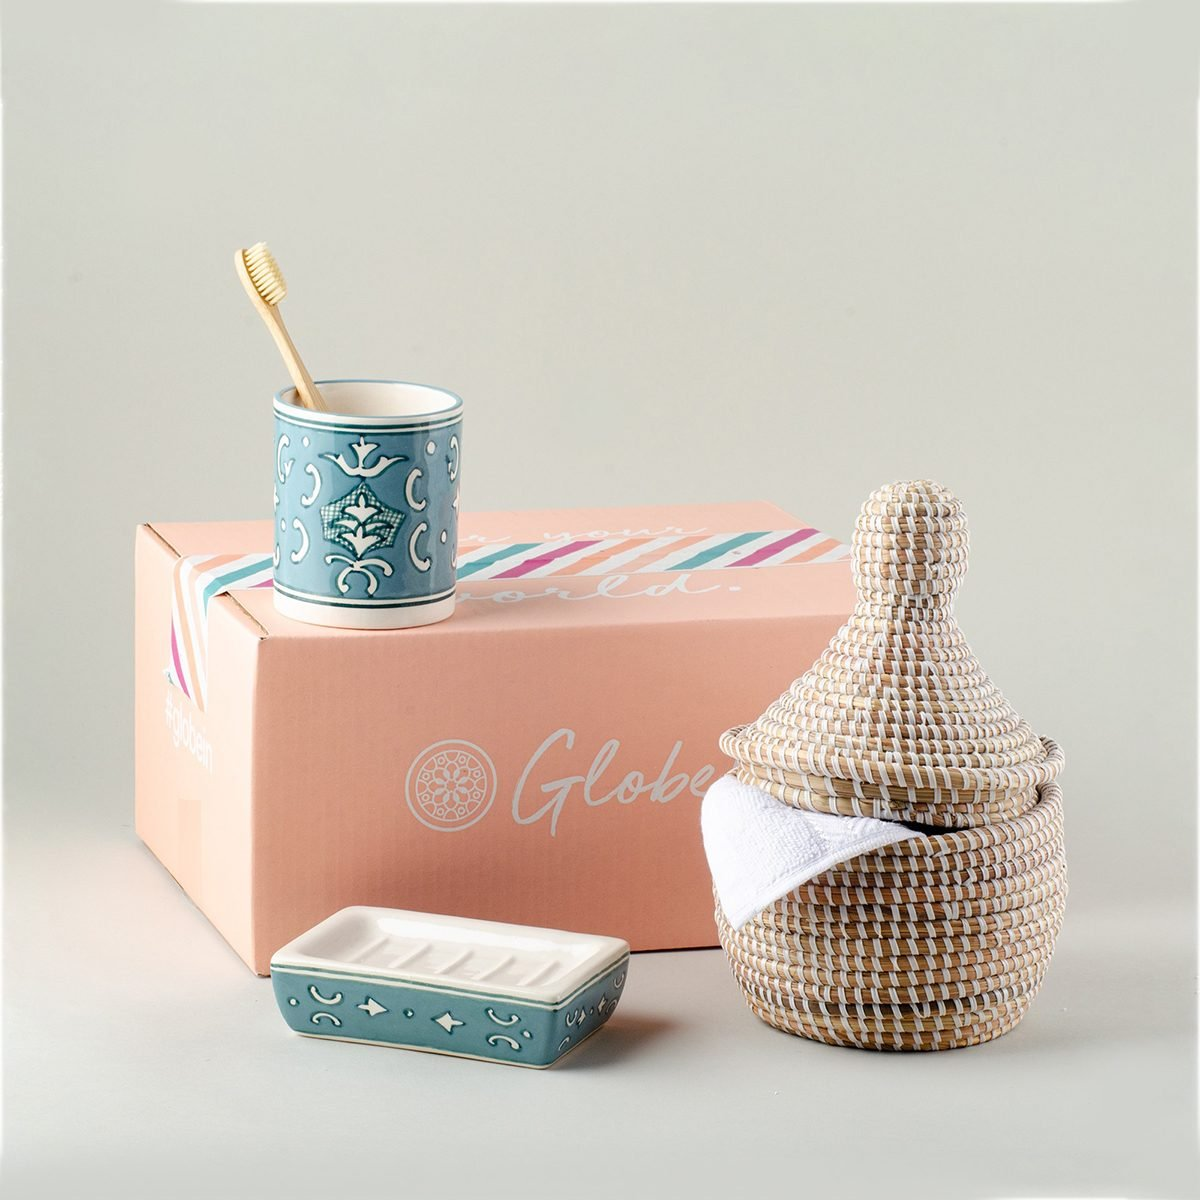 Globein Box home decor subscription box